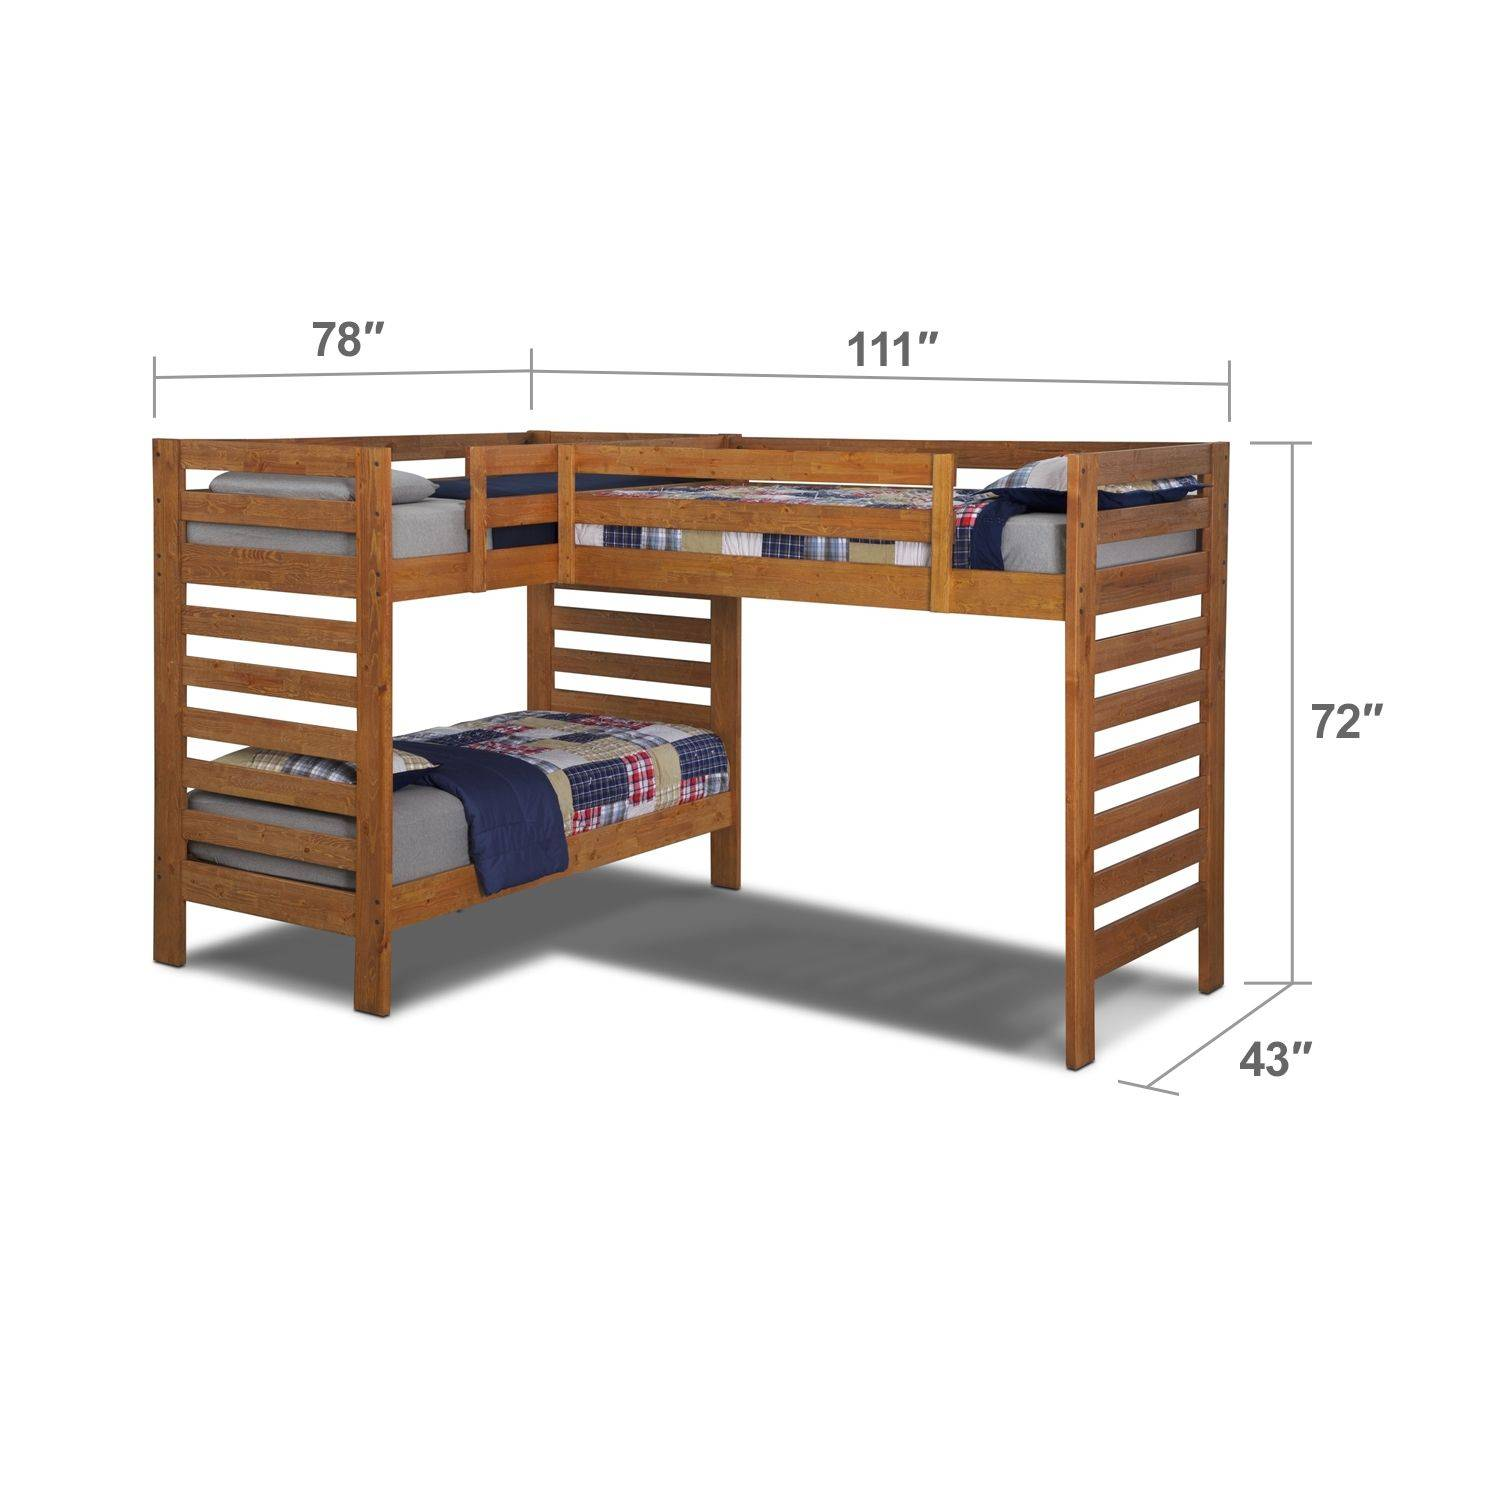 Space Saving Bunk Beds Luxury Wonderful L Shaped Bunk Bed Designs Double Loft Beds L